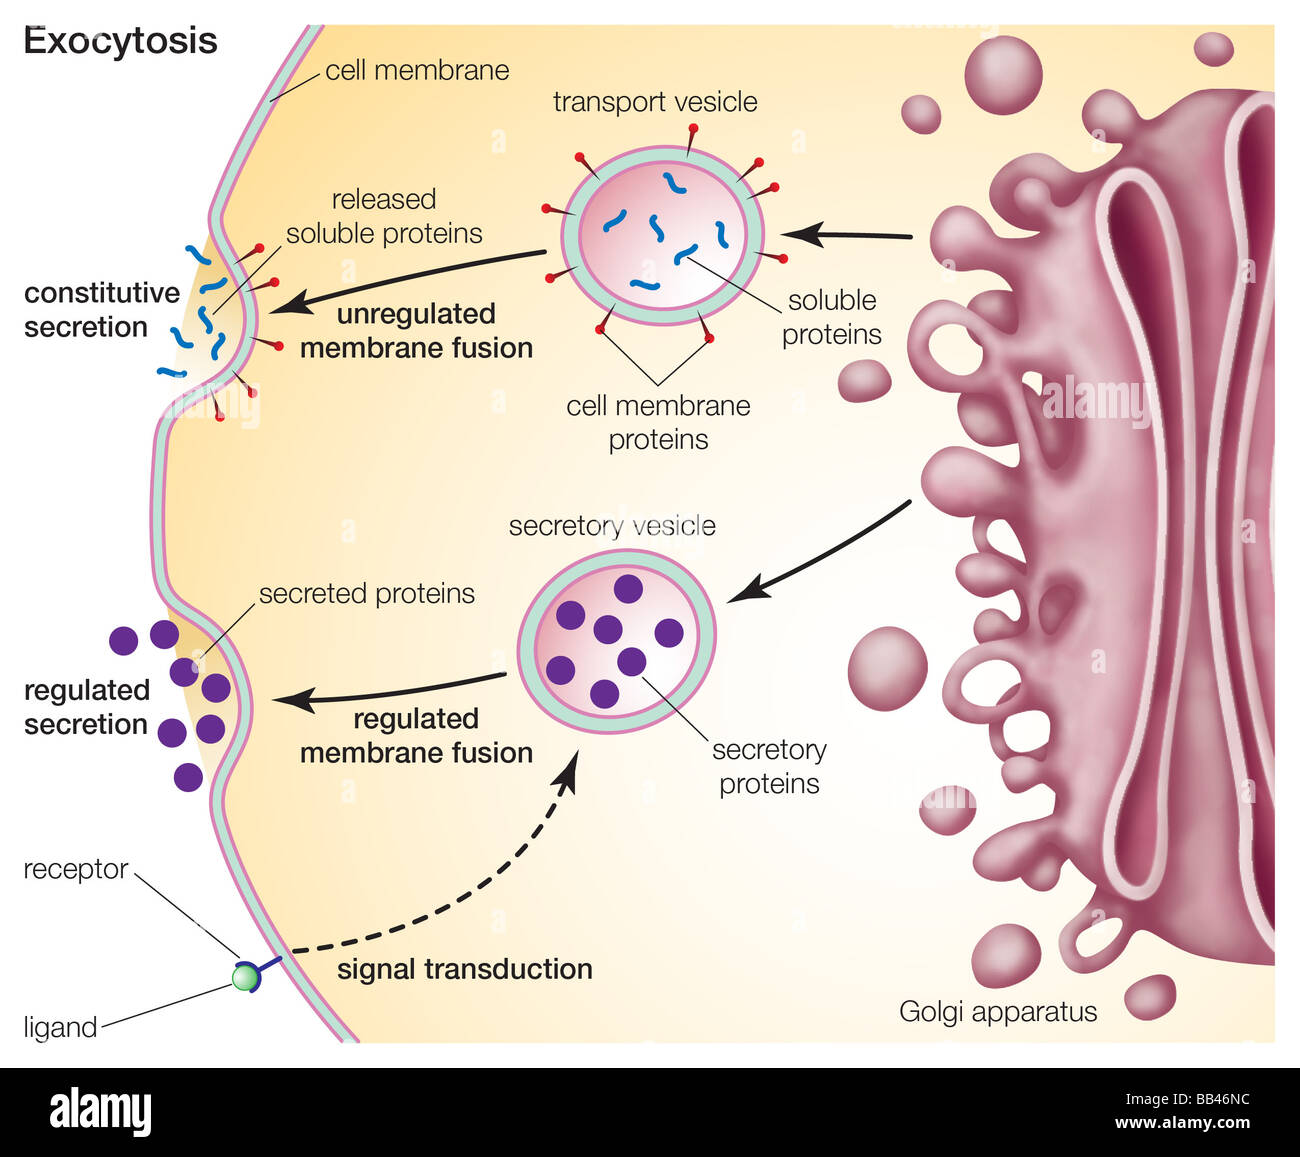 Exocytosis, a process for primary active transport across the cell membrane. - Stock Image